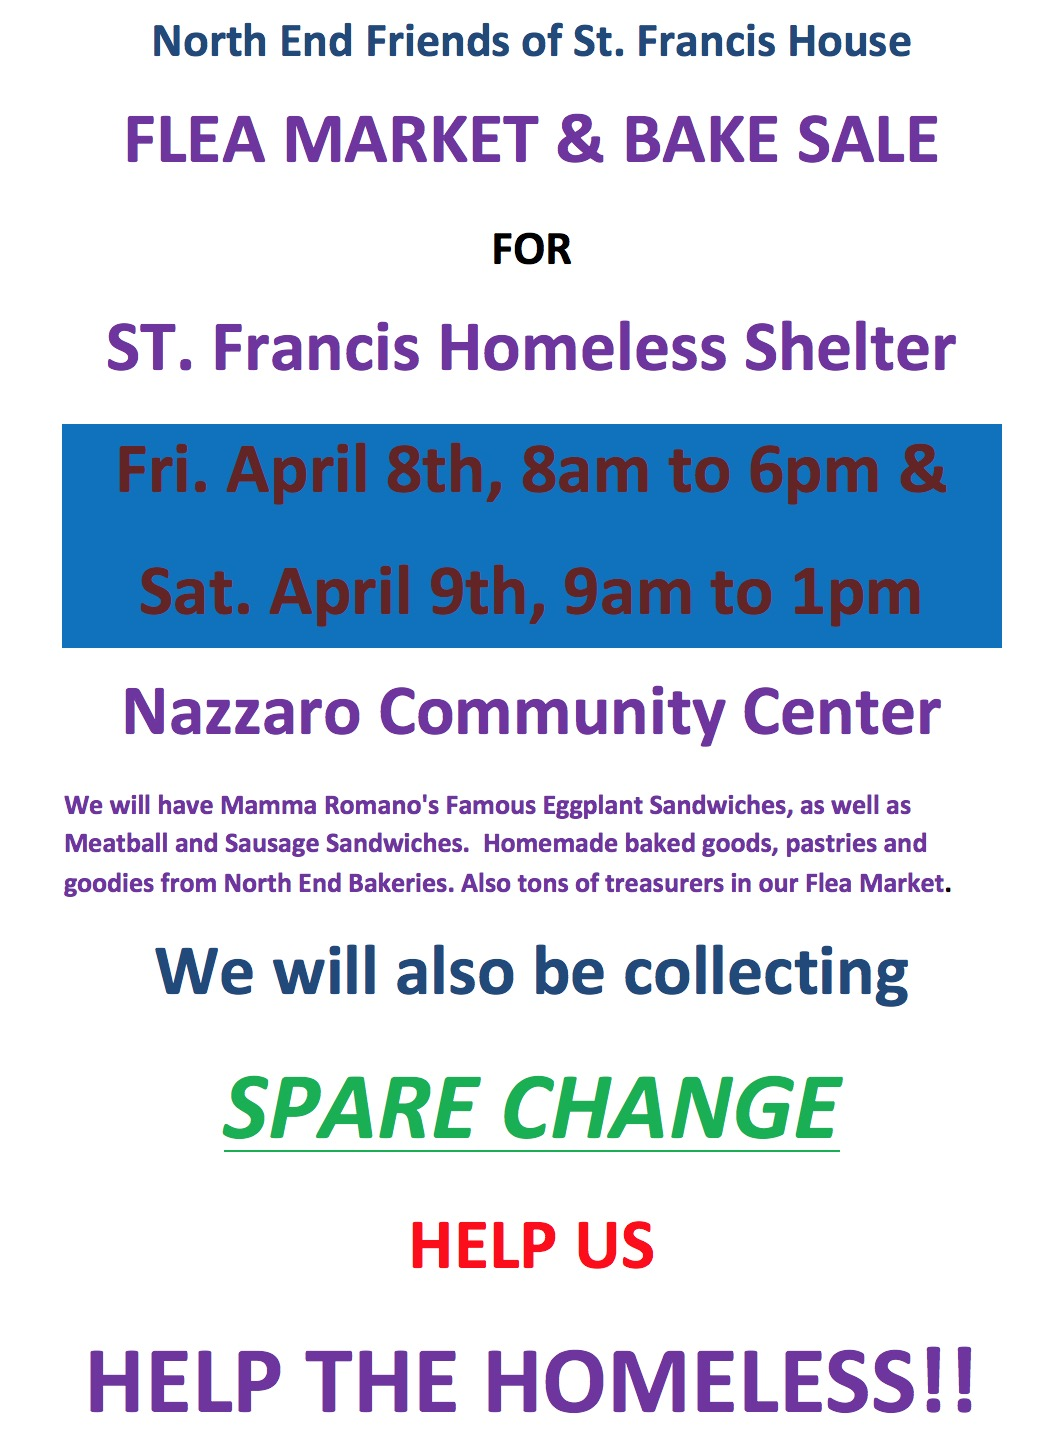 North End Friends of St. Francis House will hold their annual Flea Market & Bake Sale to benefit the St. Francis Homeless Shelter on April 8th and 9th.